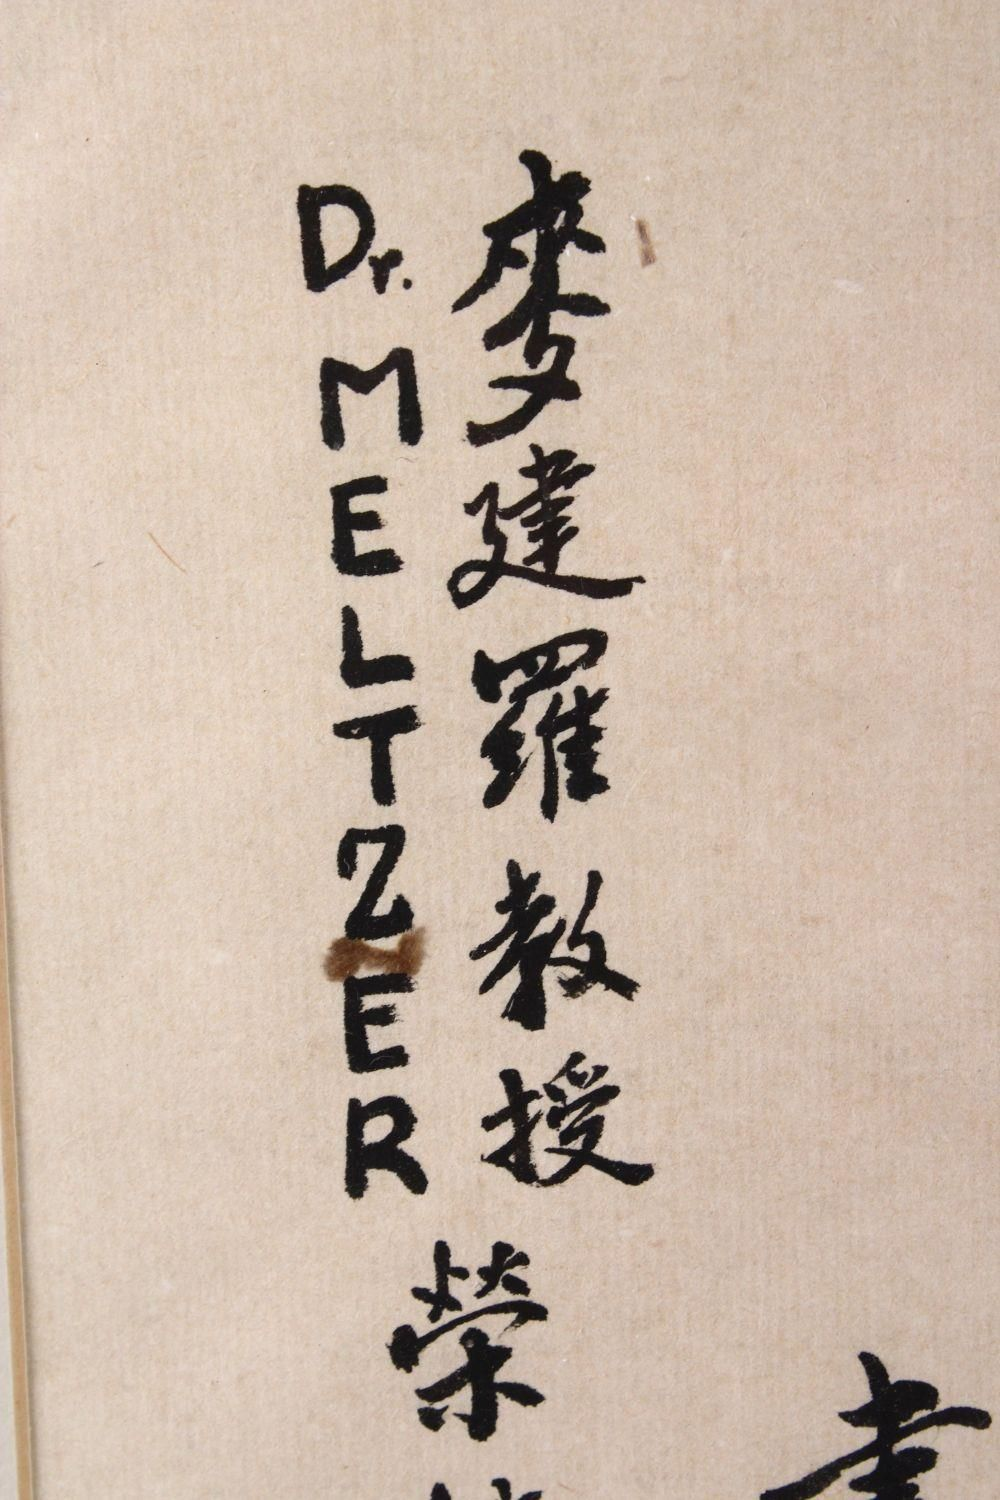 A CHINESE PAINTED CALLIGRAPHY WORK PICTURE, a presentation painting for DR Meltzer from Waleter, - Image 5 of 5